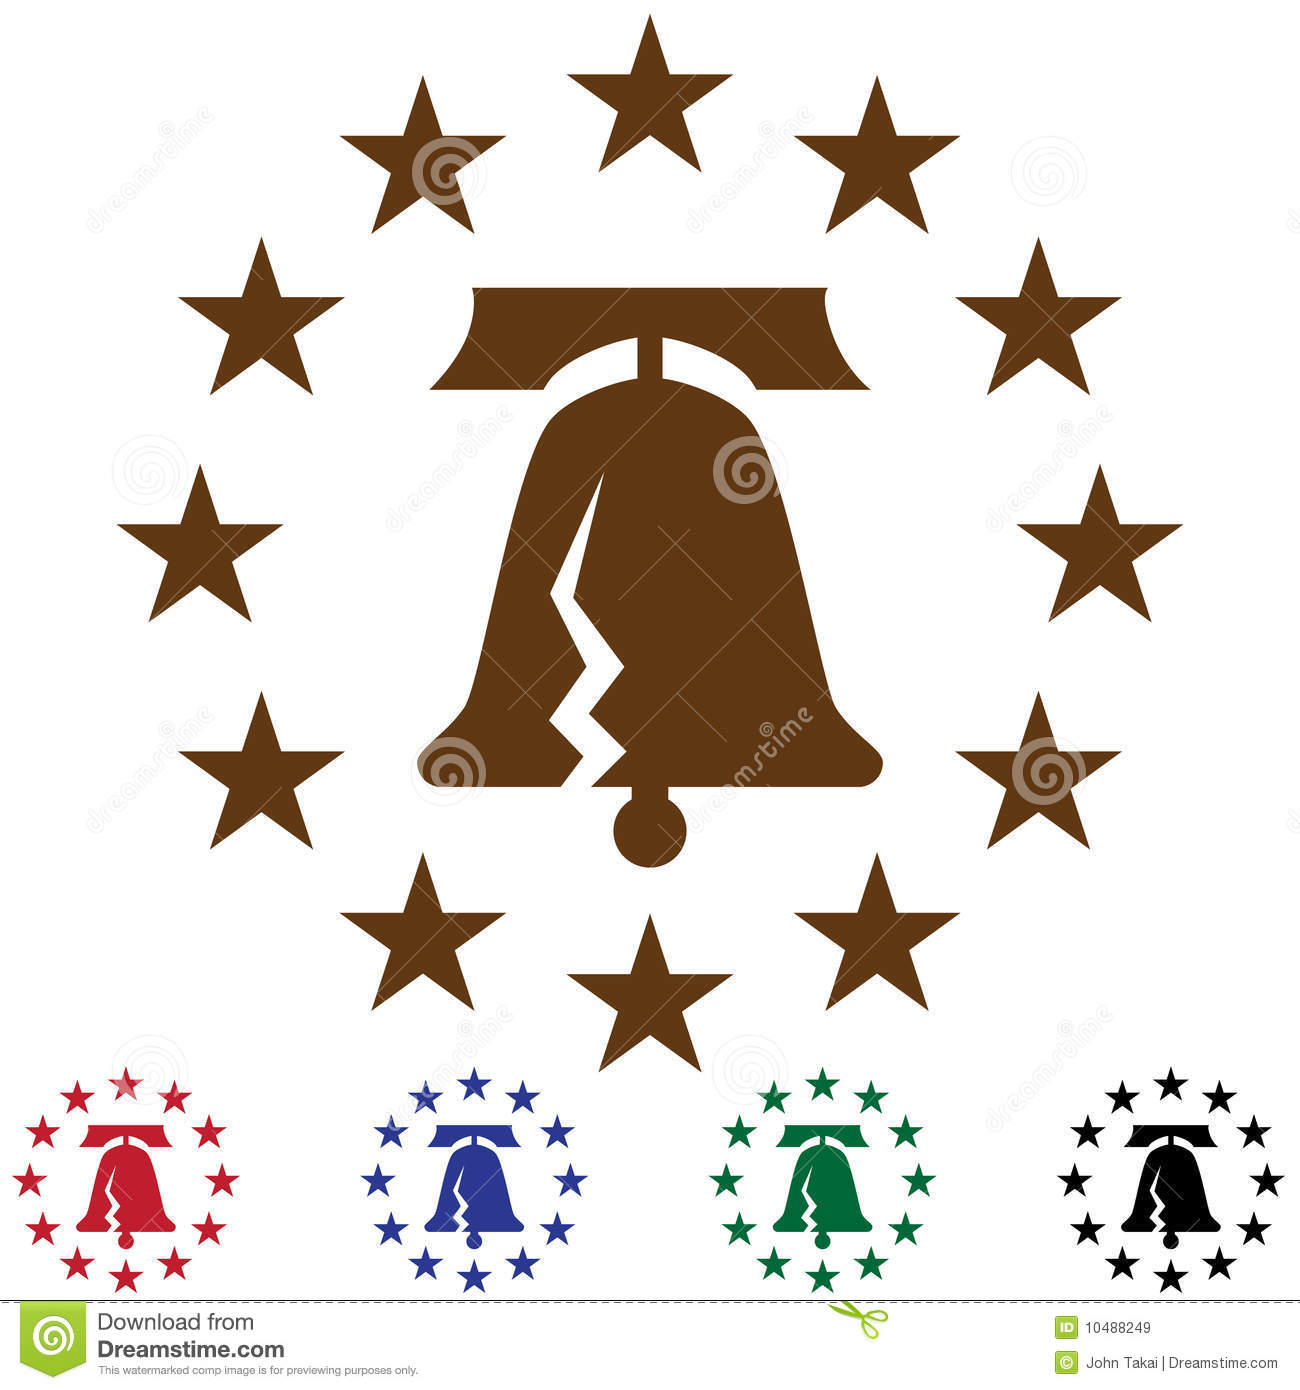 Liberty Bell With Stars Royalty Free Stock Images - Image: 10488249